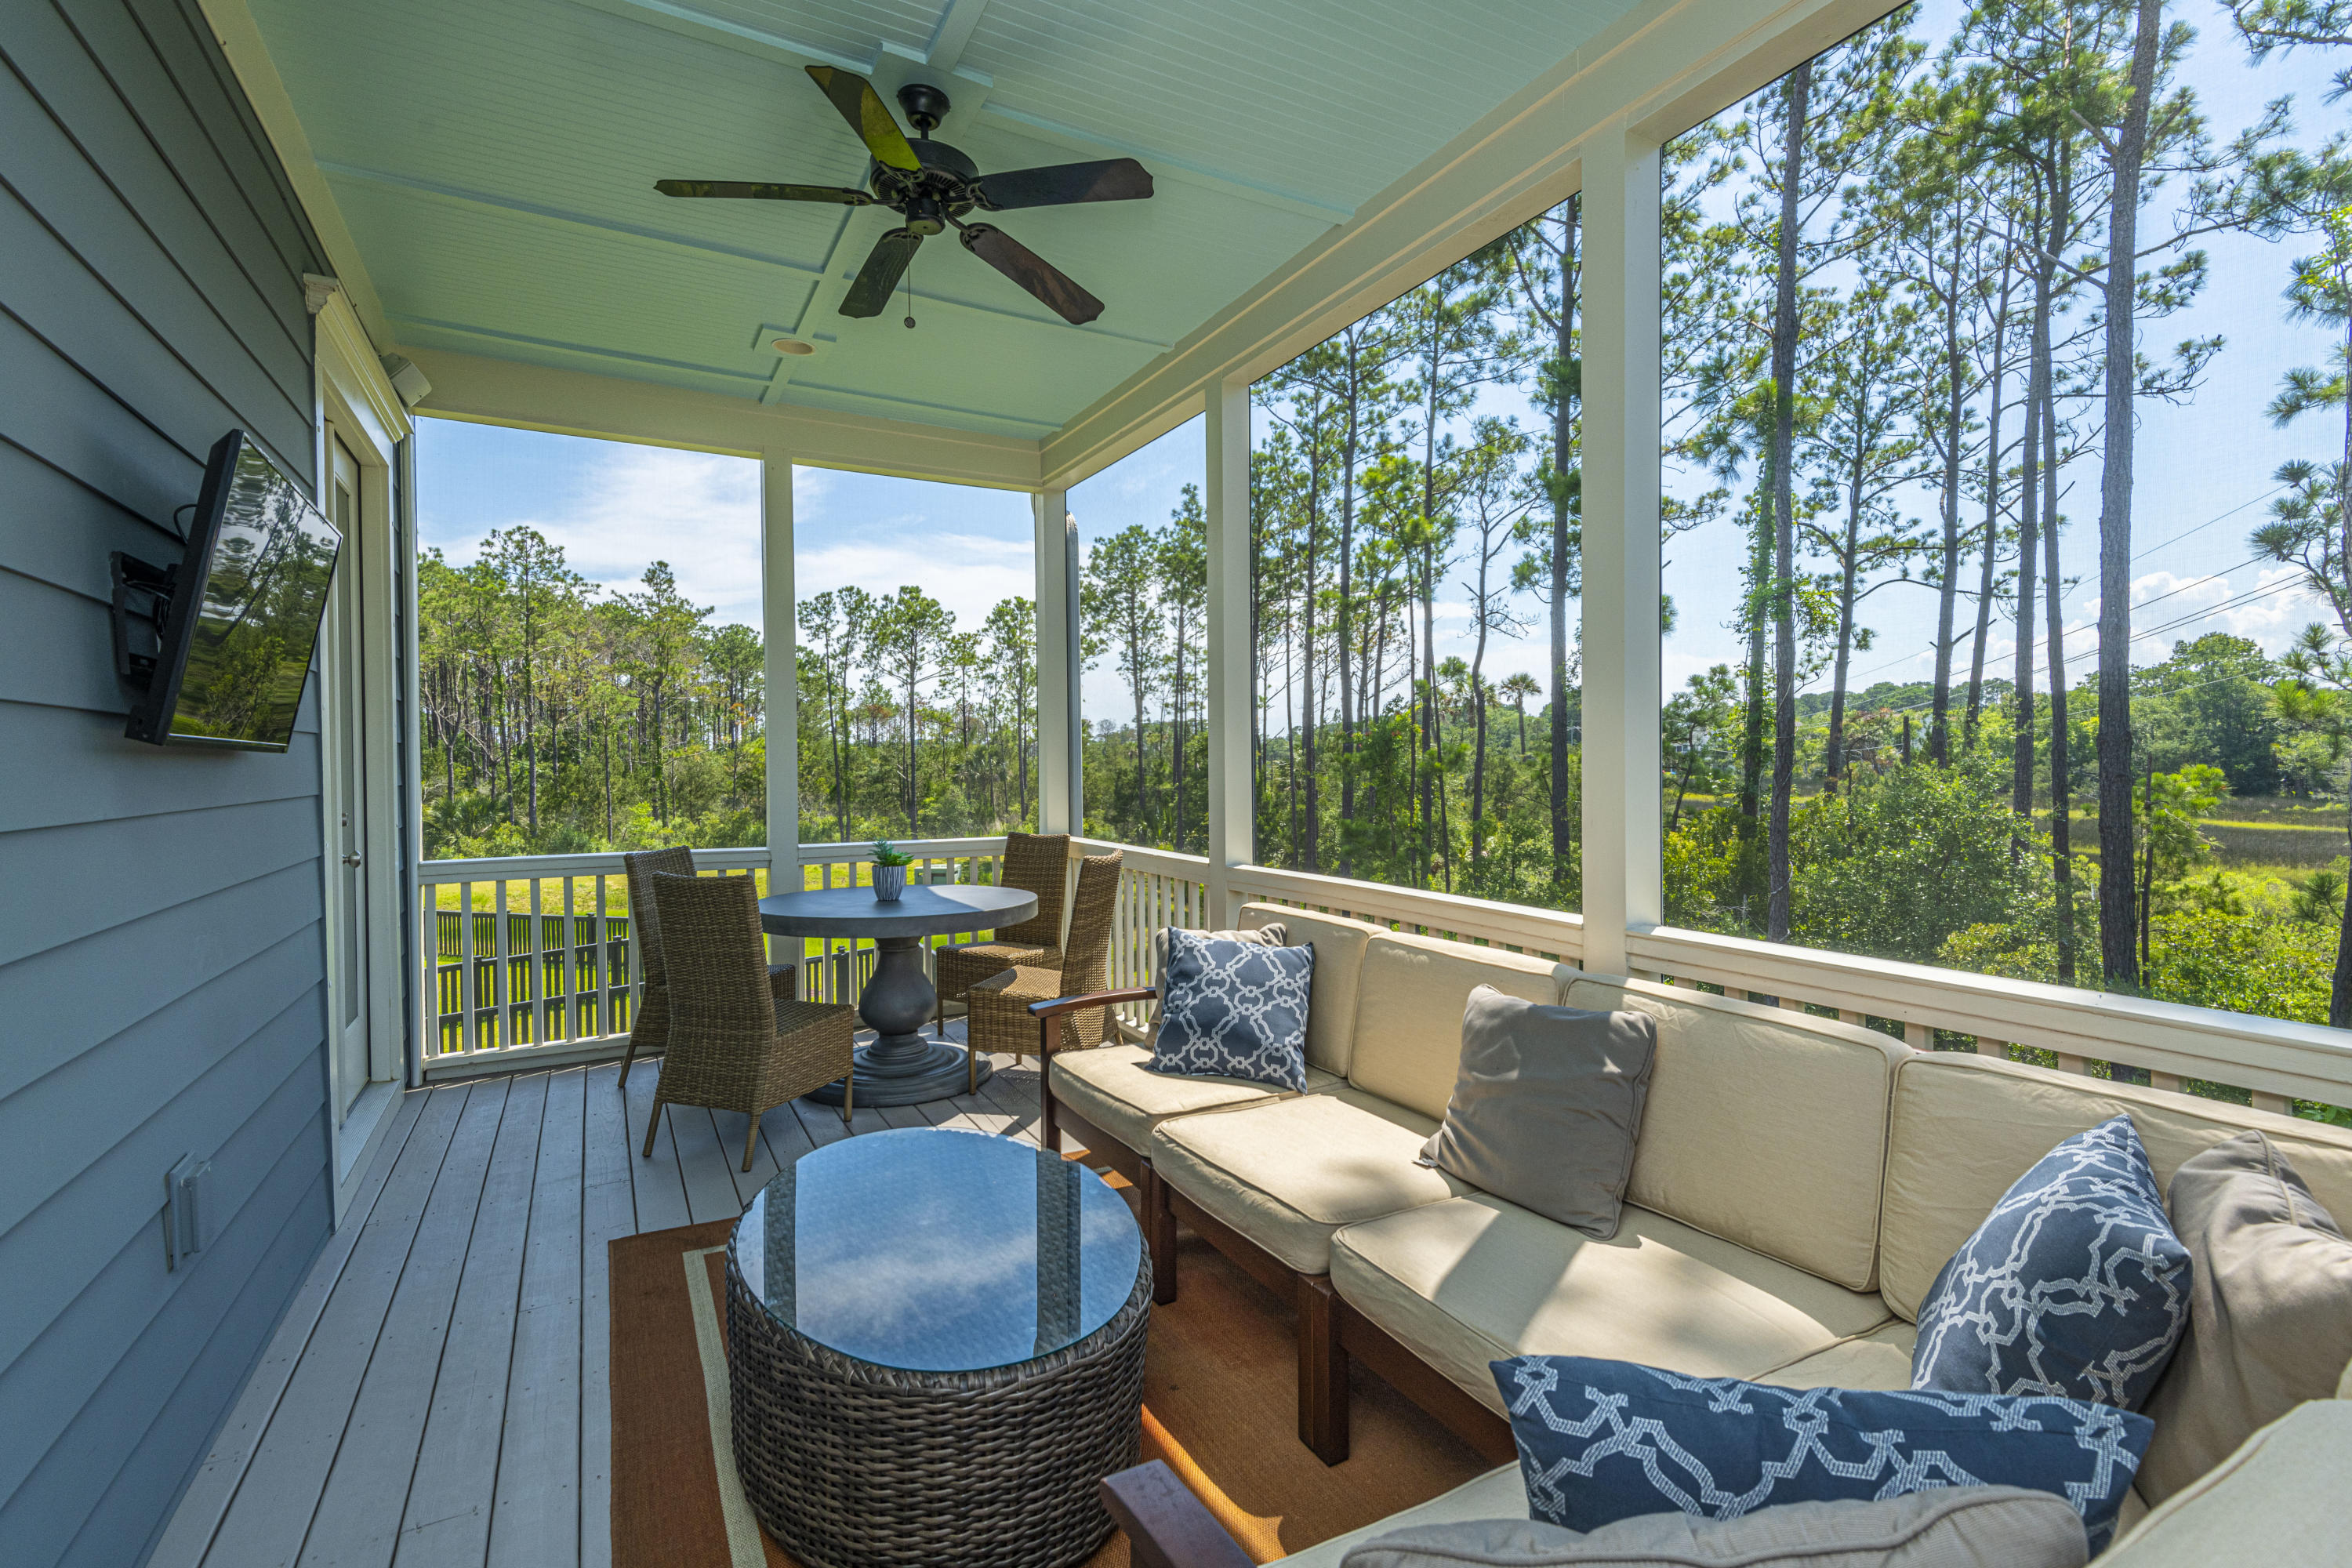 Stratton by the Sound Homes For Sale - 1204 Spottail, Mount Pleasant, SC - 30